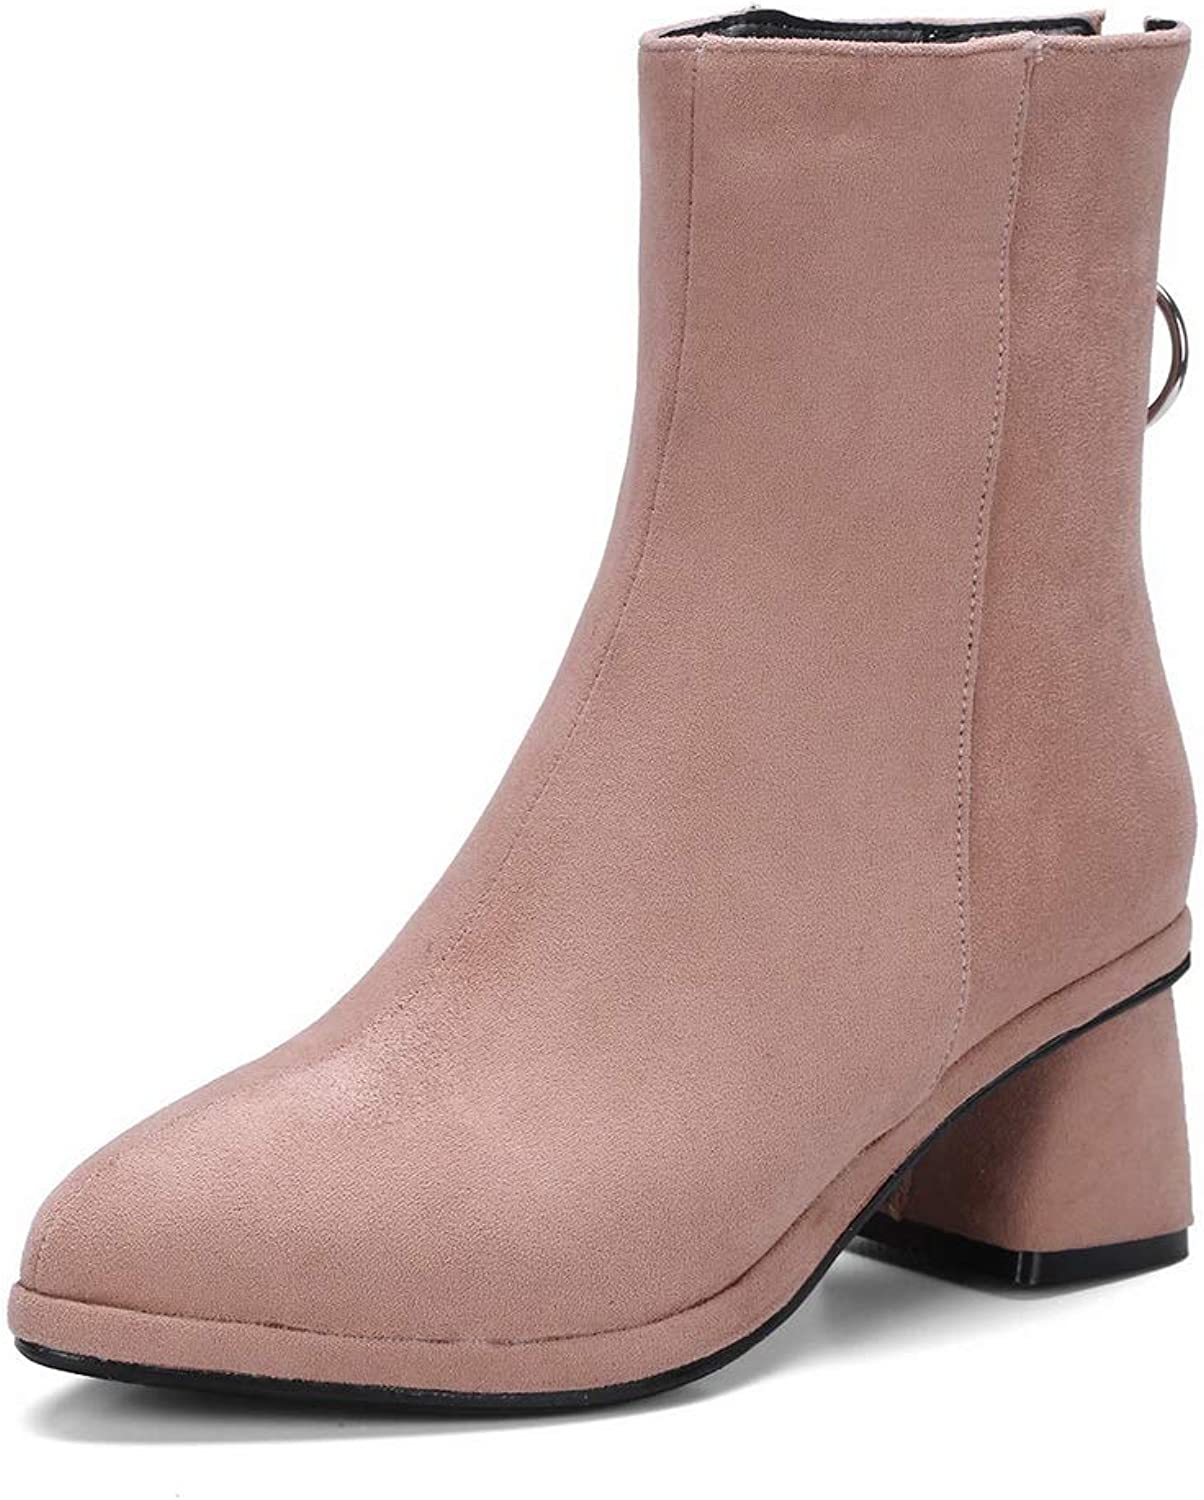 AN Womens Chunky Heels Metal Buckles Imitated Suede Boots DKU02291